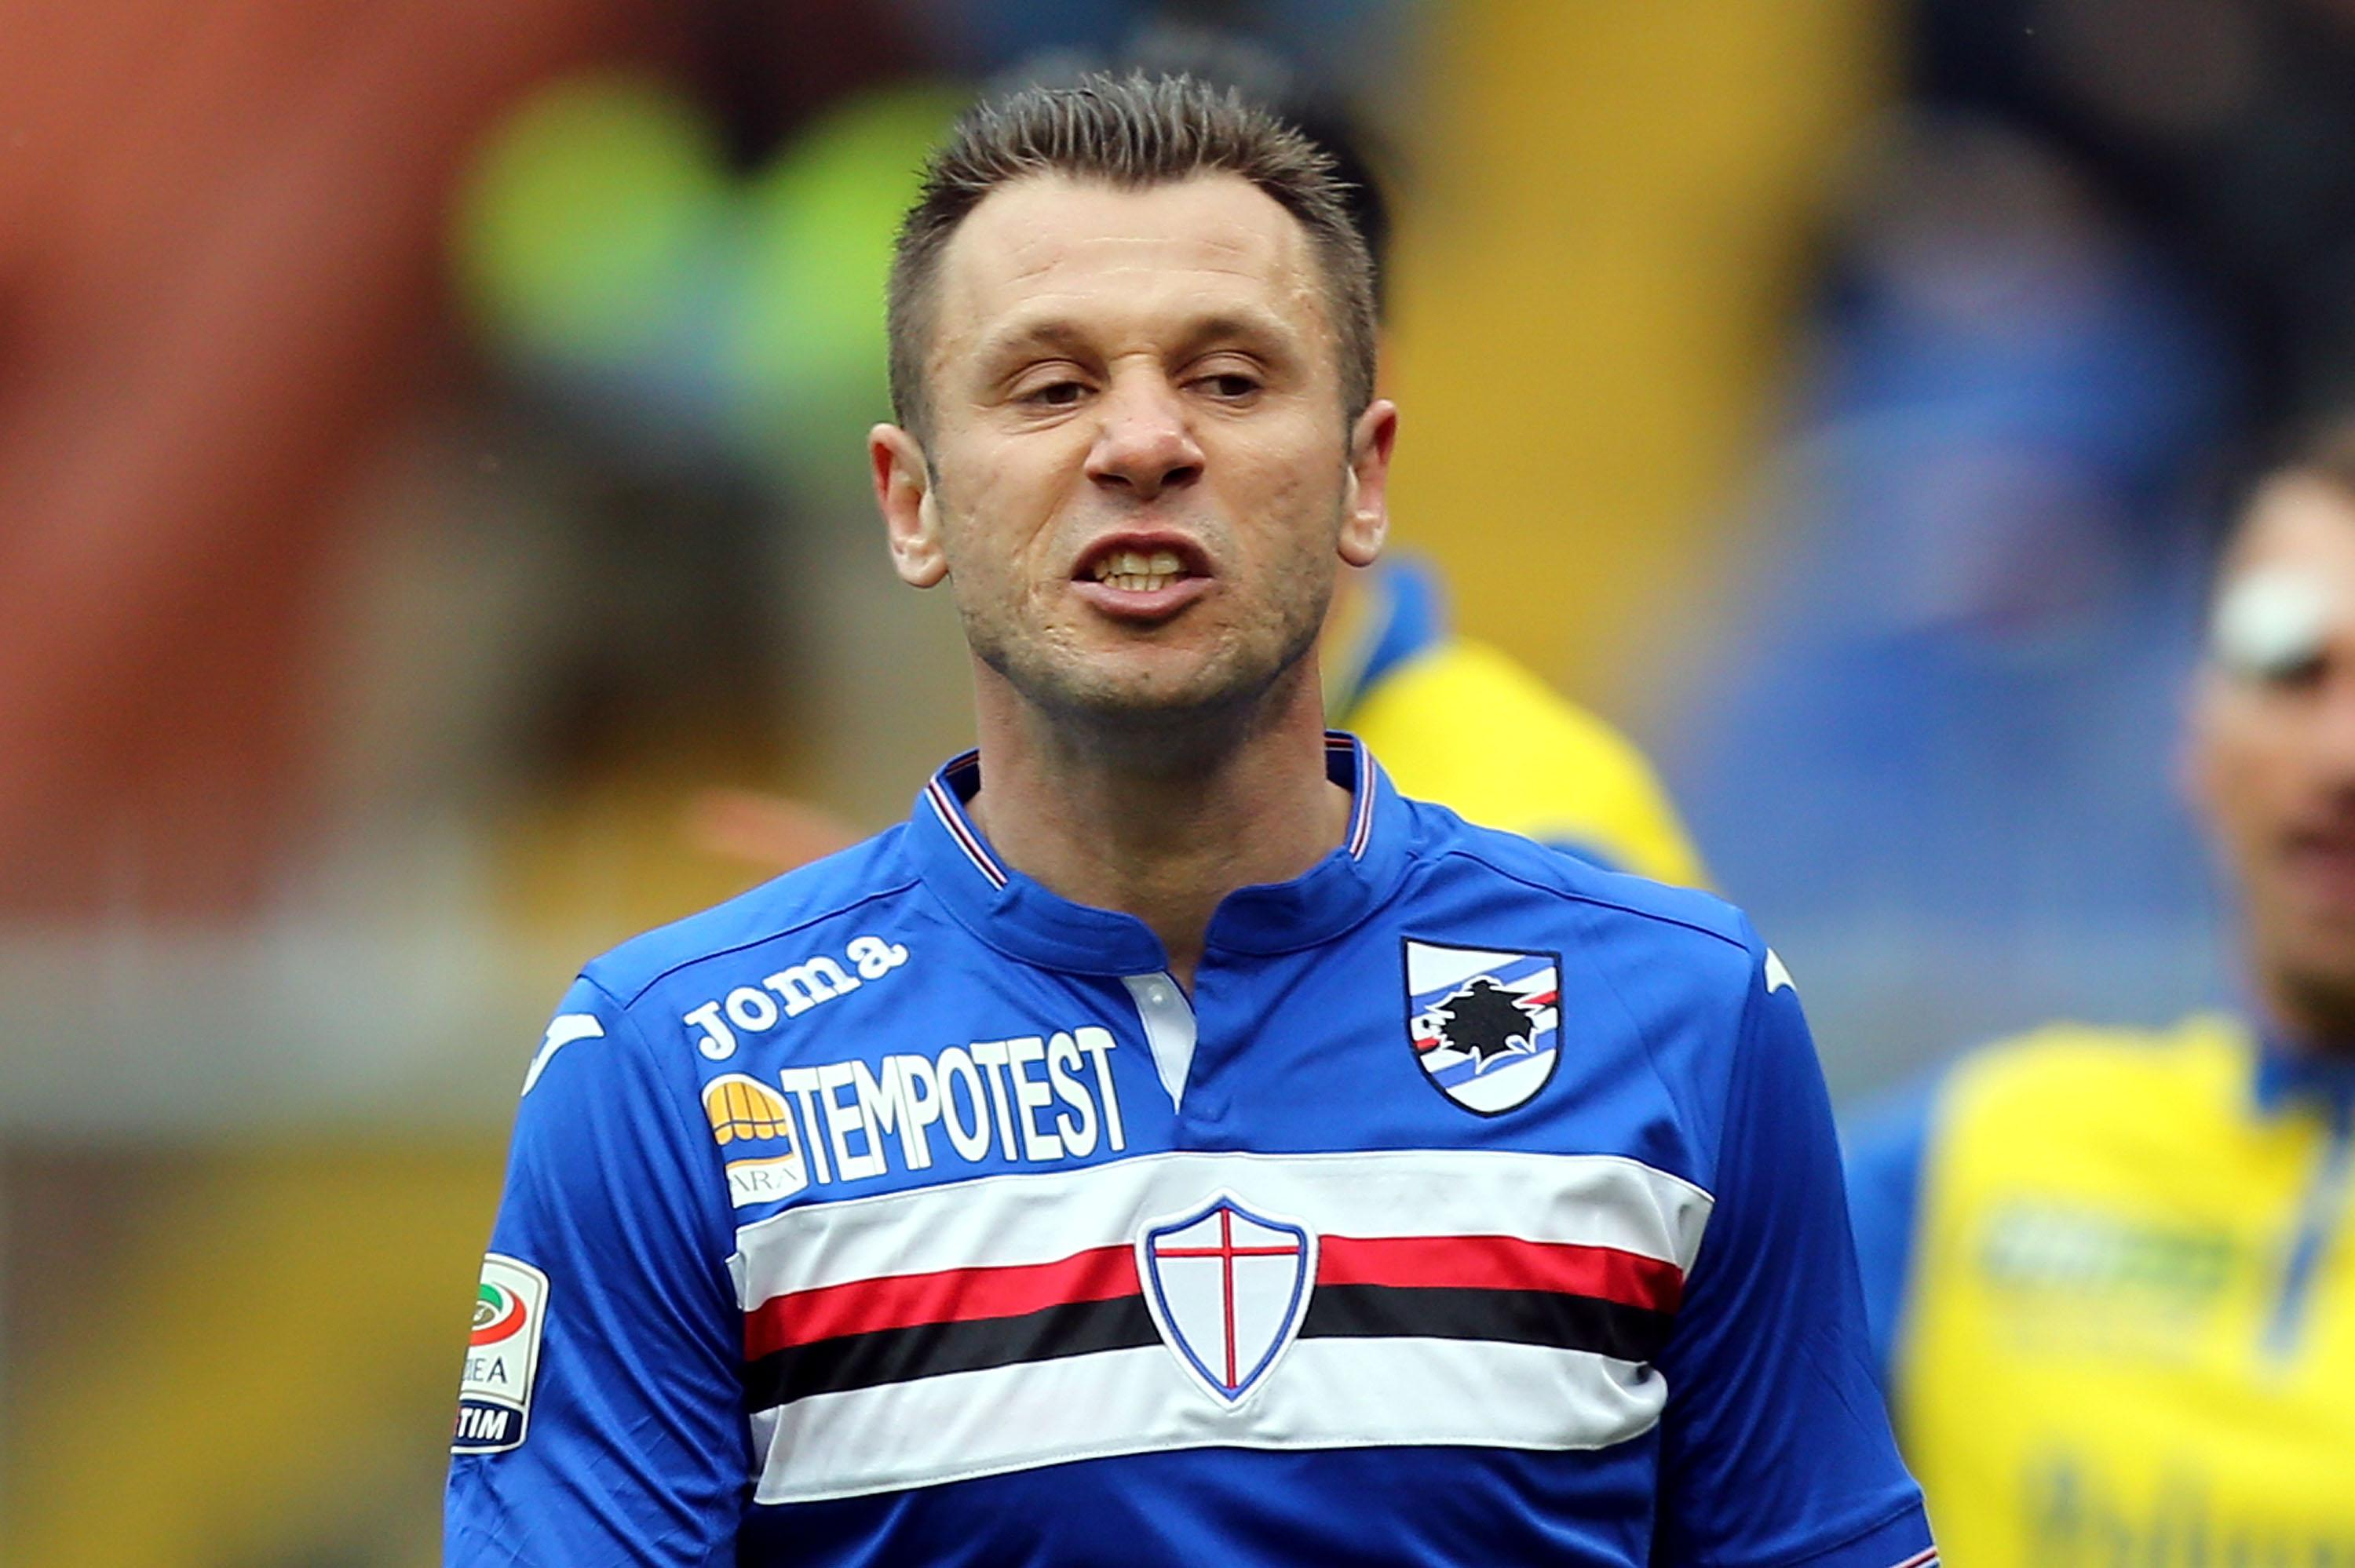 Antonio Cassano played his last competitive game for Sampdoria over two years ago